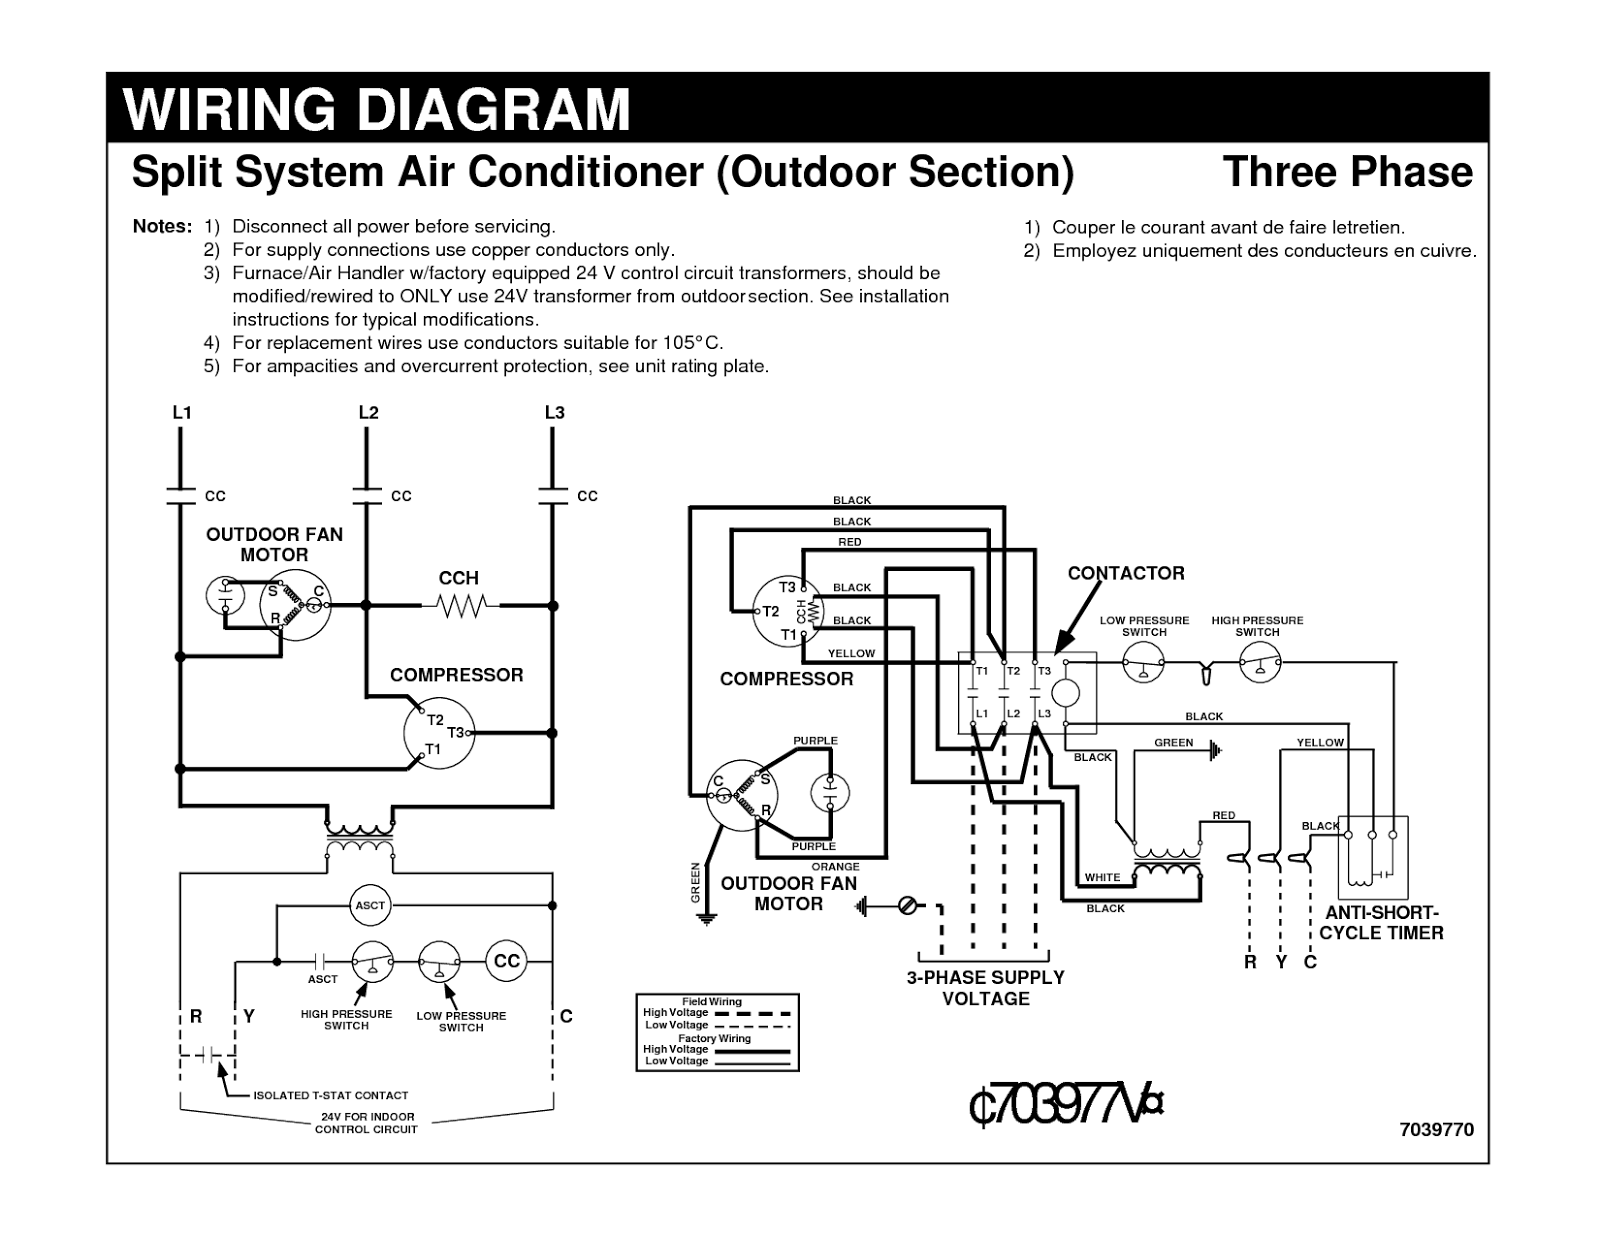 auto air conditioner wiring diagram rooftop air conditioner wiring diagram electrical wiring diagrams for air conditioning systems ...